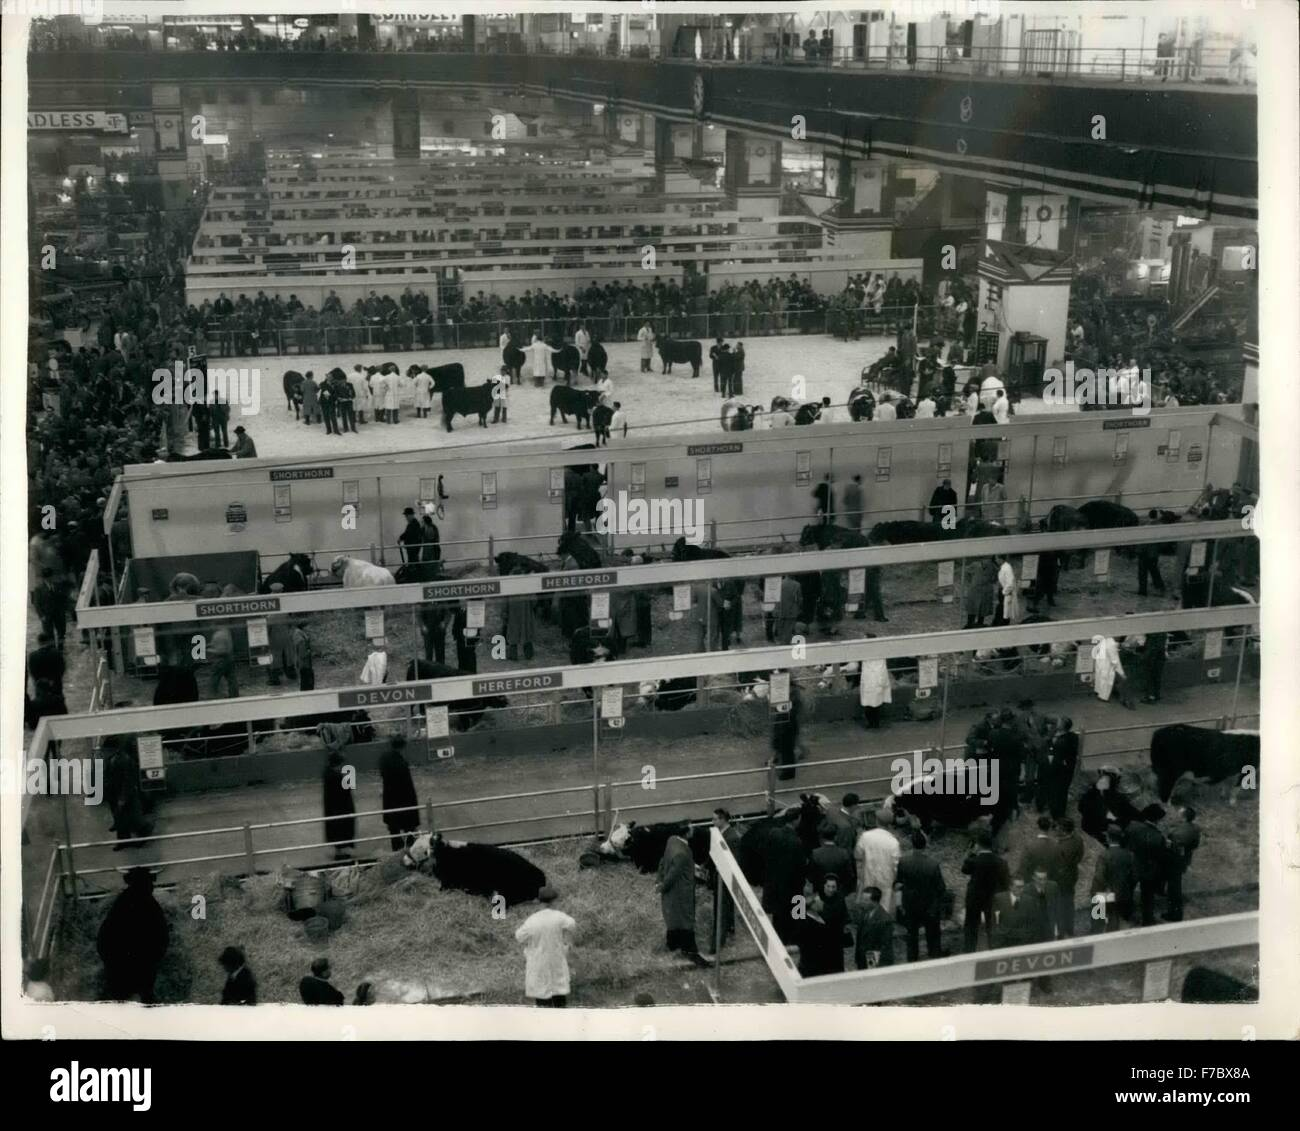 1962 - Opening of the Smithfield Show. General view: Photo shows General view after the opening of the Smithfield - Stock Image